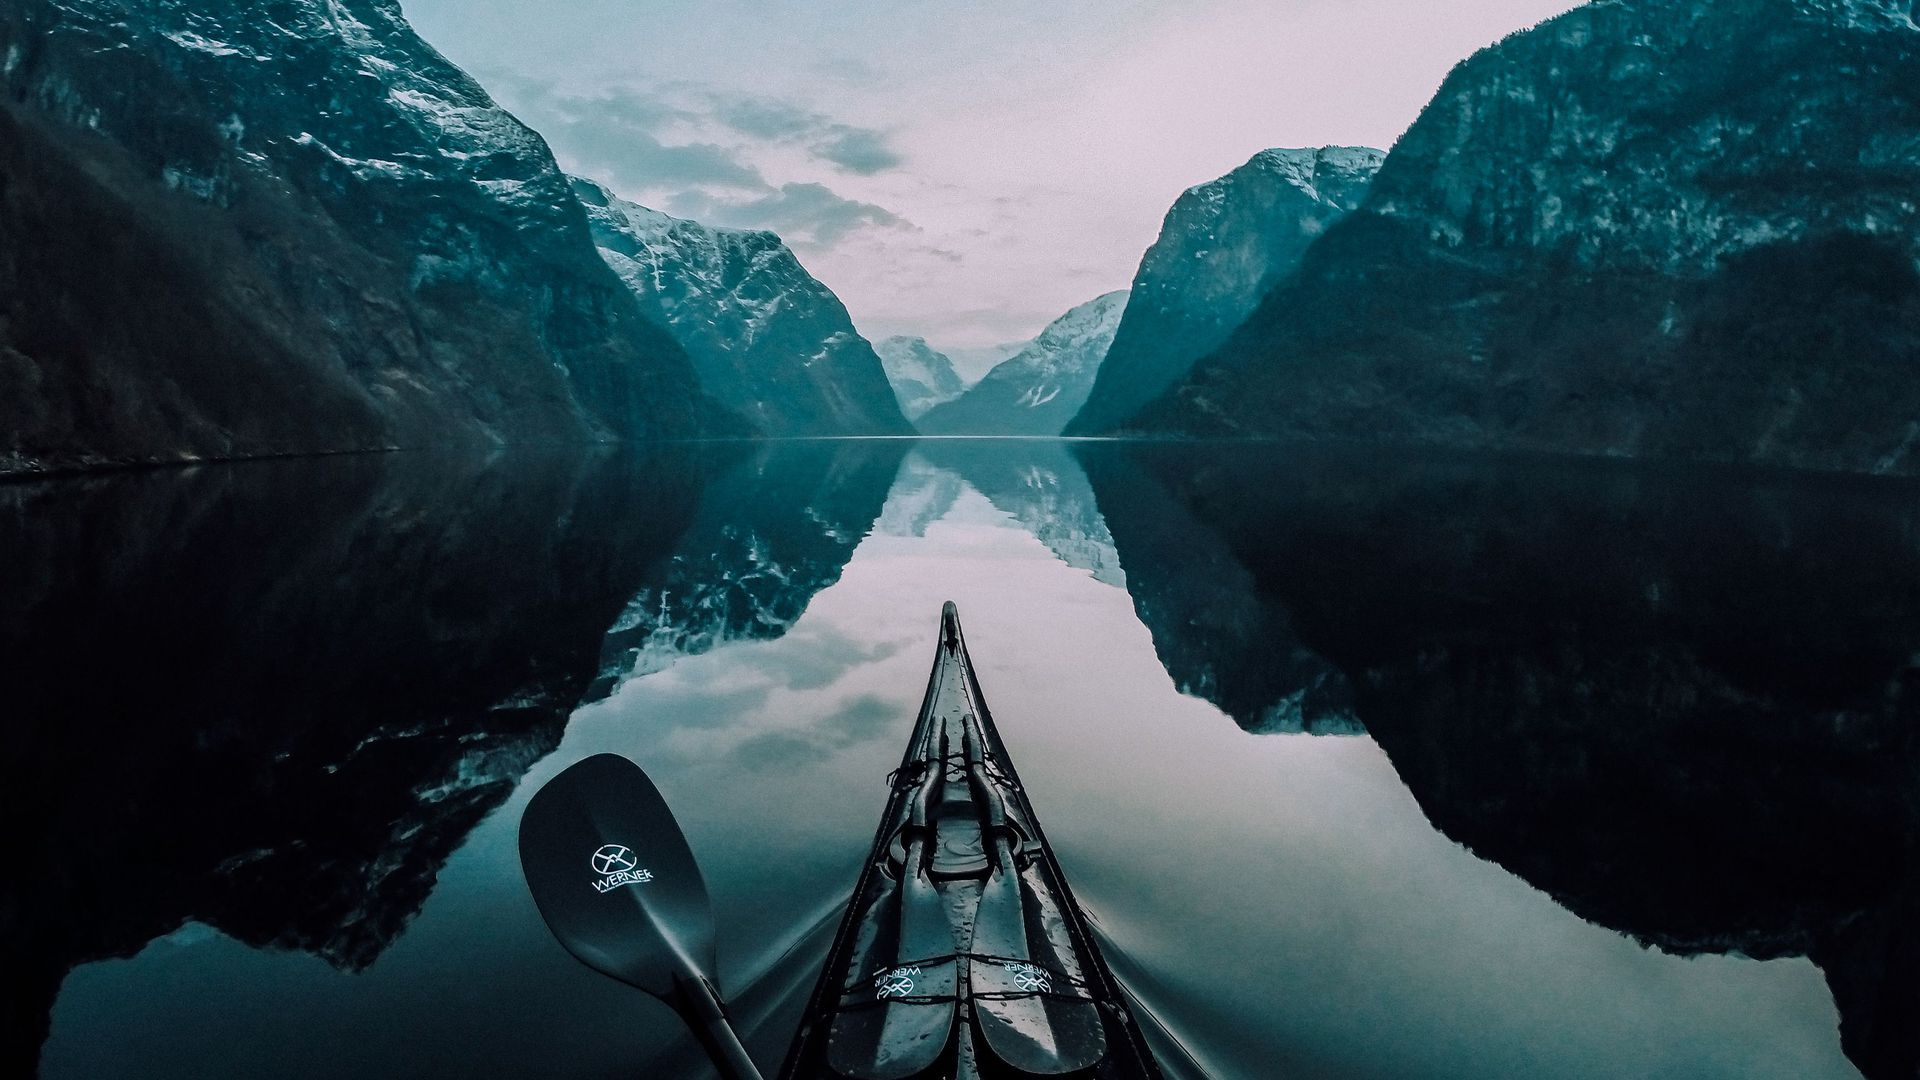 Kayak wallpaper photo full hd